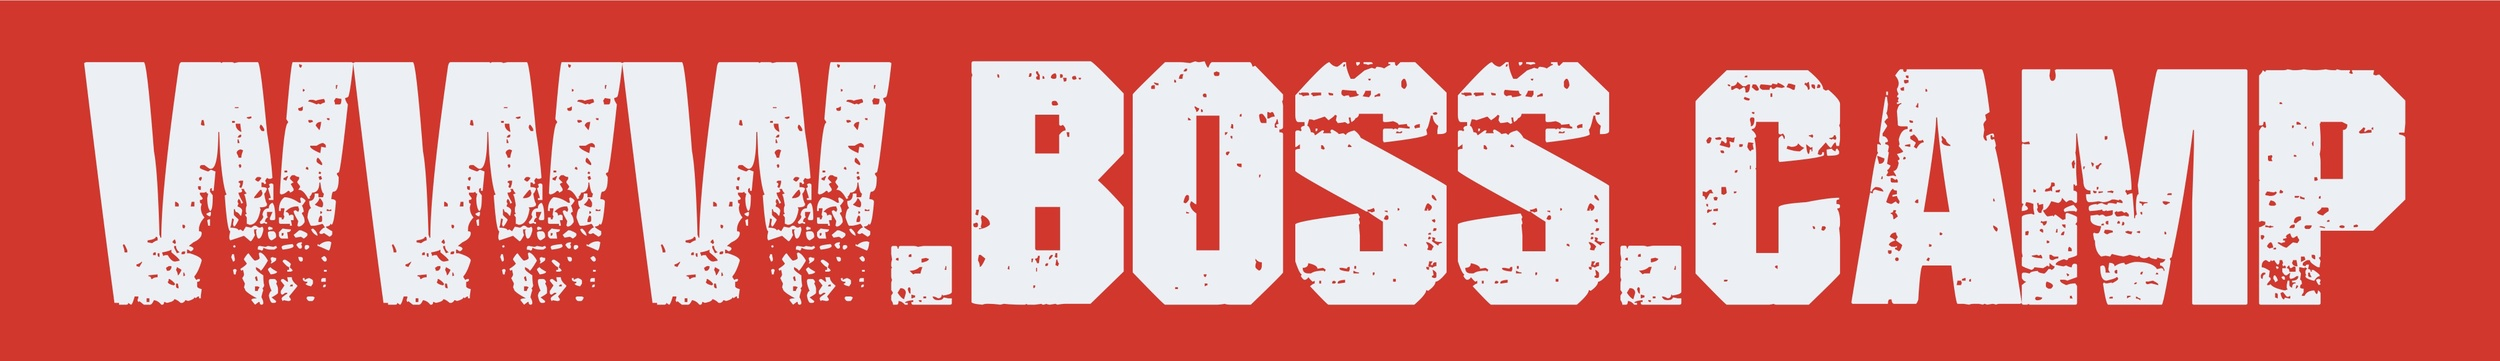 Find out how to be a better boss at www.boss.camp Jpeg